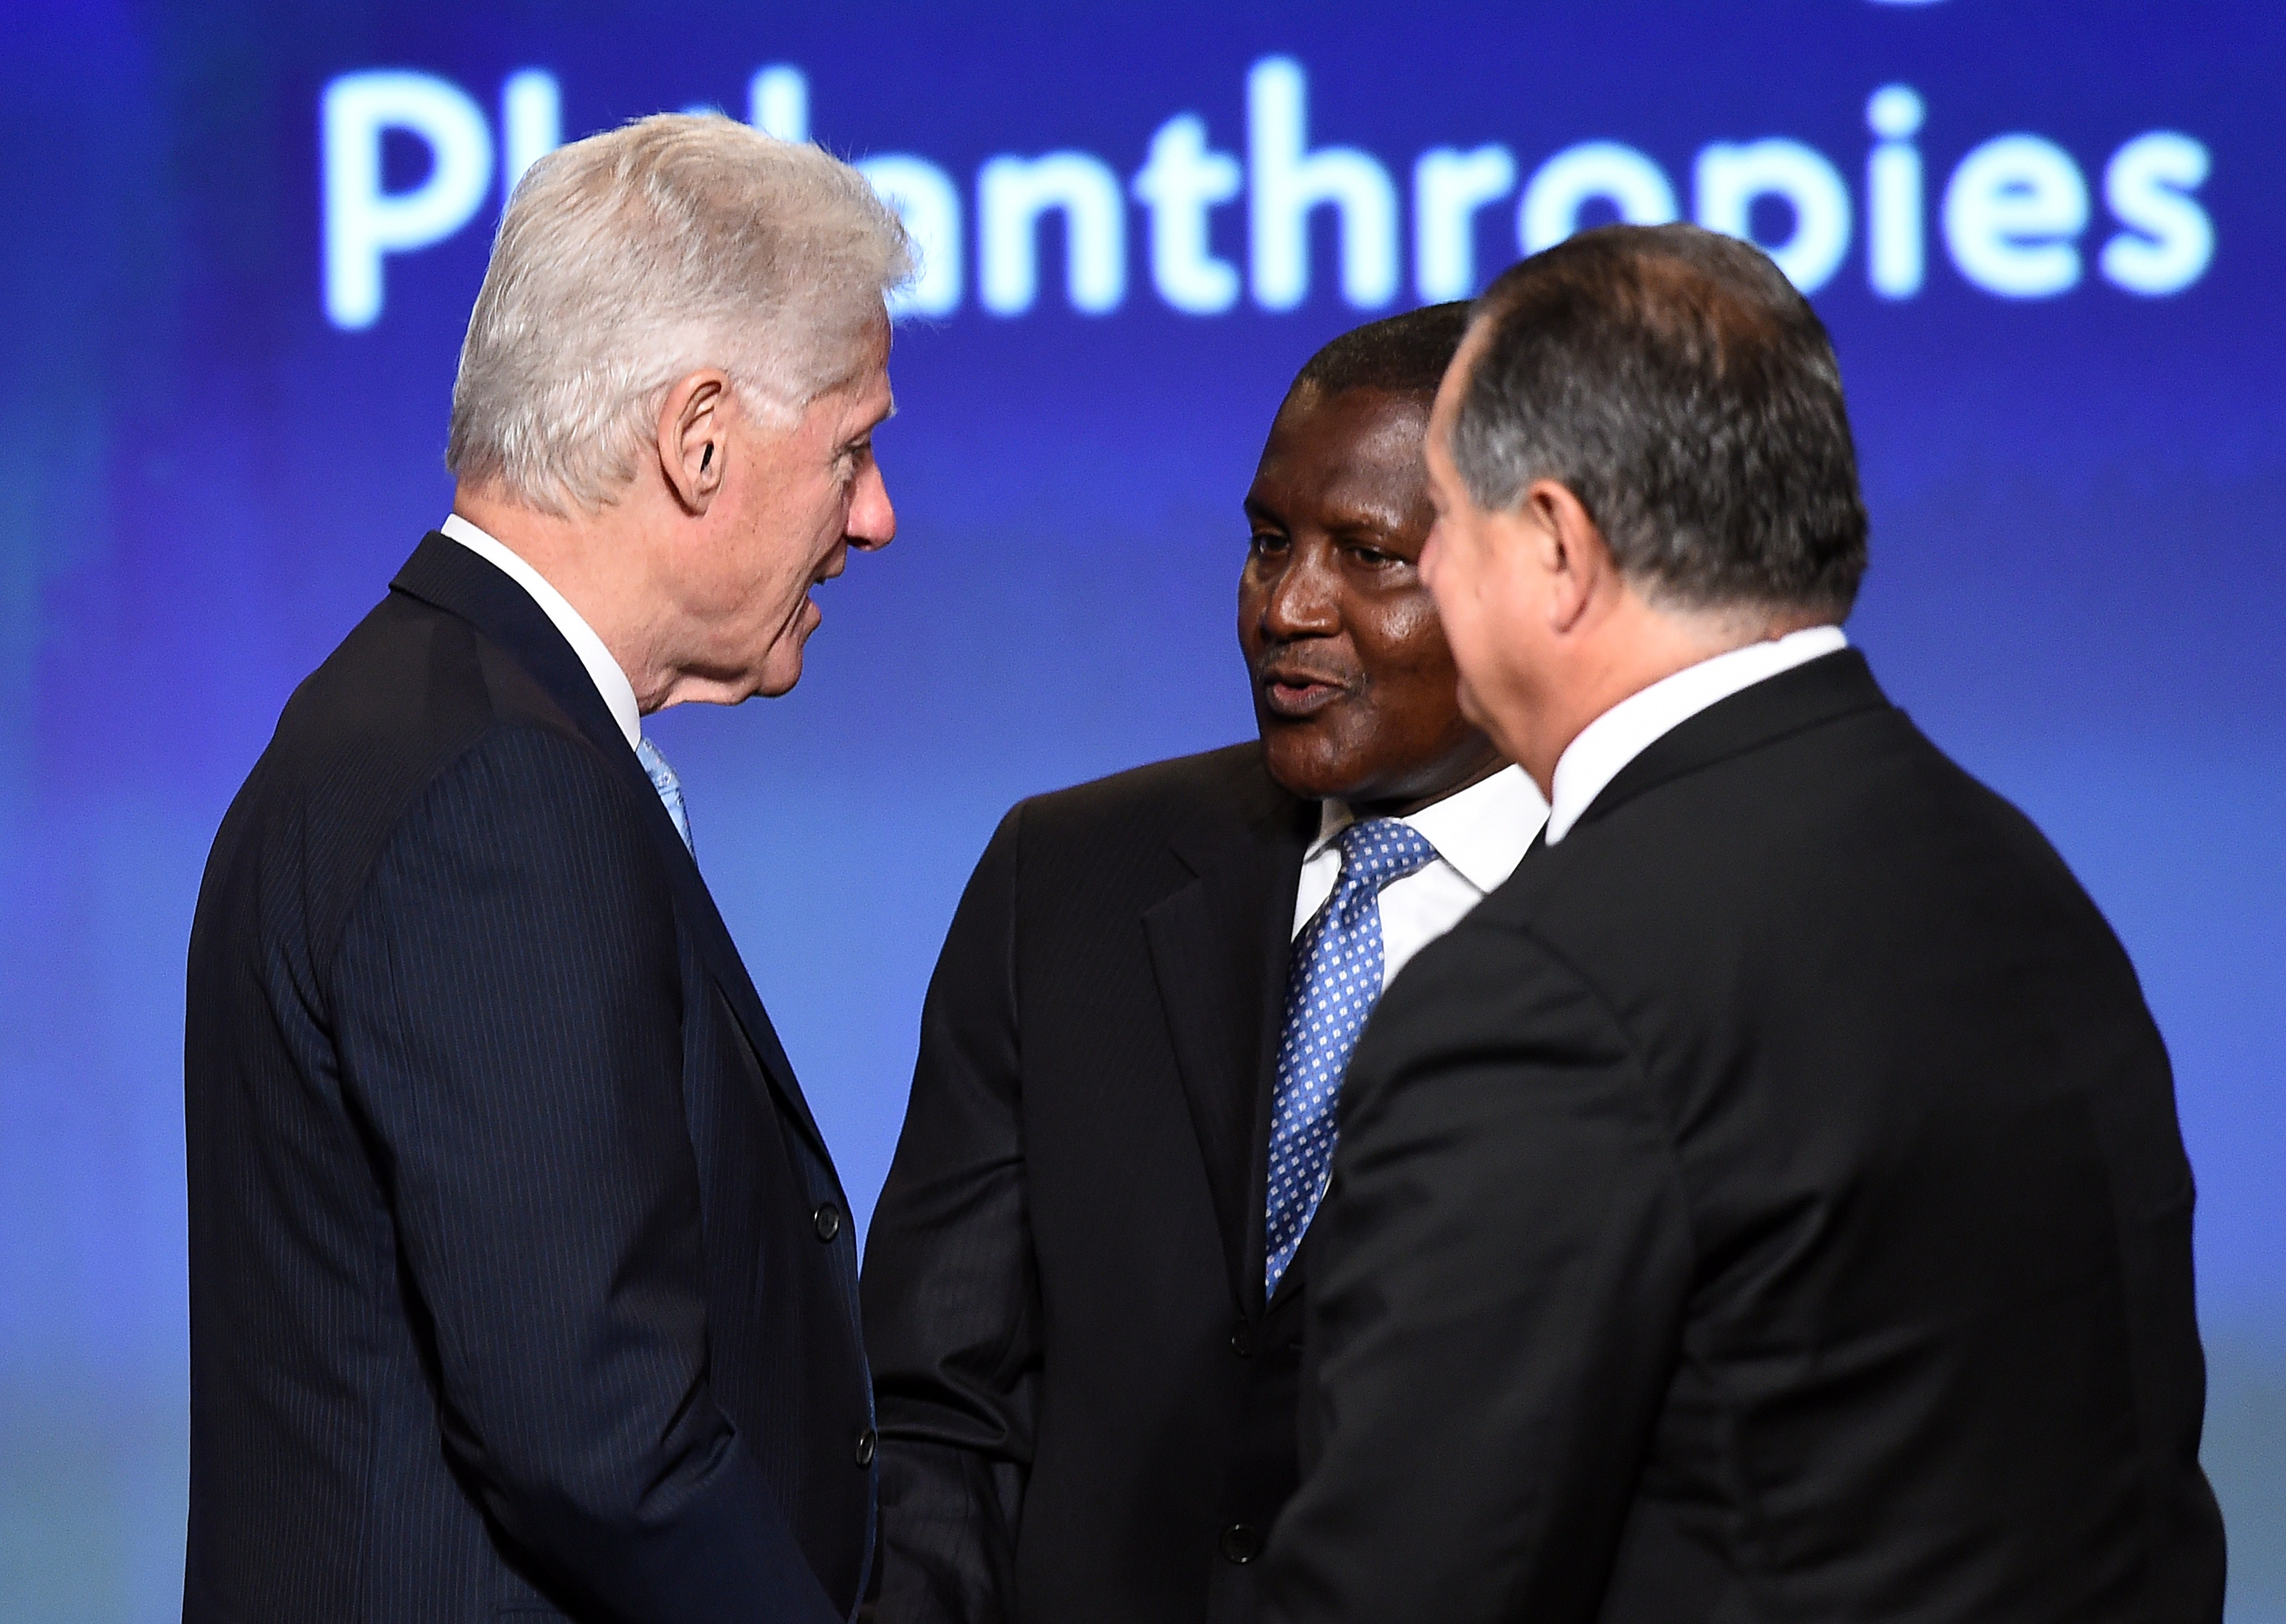 Former U.S. President Bill Clinton (L) speaks with Aliko Dangote (C), President and CEO, Dangote Group, and Andrew N. Liveris, President, Chairman & CEO, at the end of a panel discussion during US-Africa Business Forum on the sideline of the US-Africa Leaders Summit in Washington, DC, on August 5, 2014.